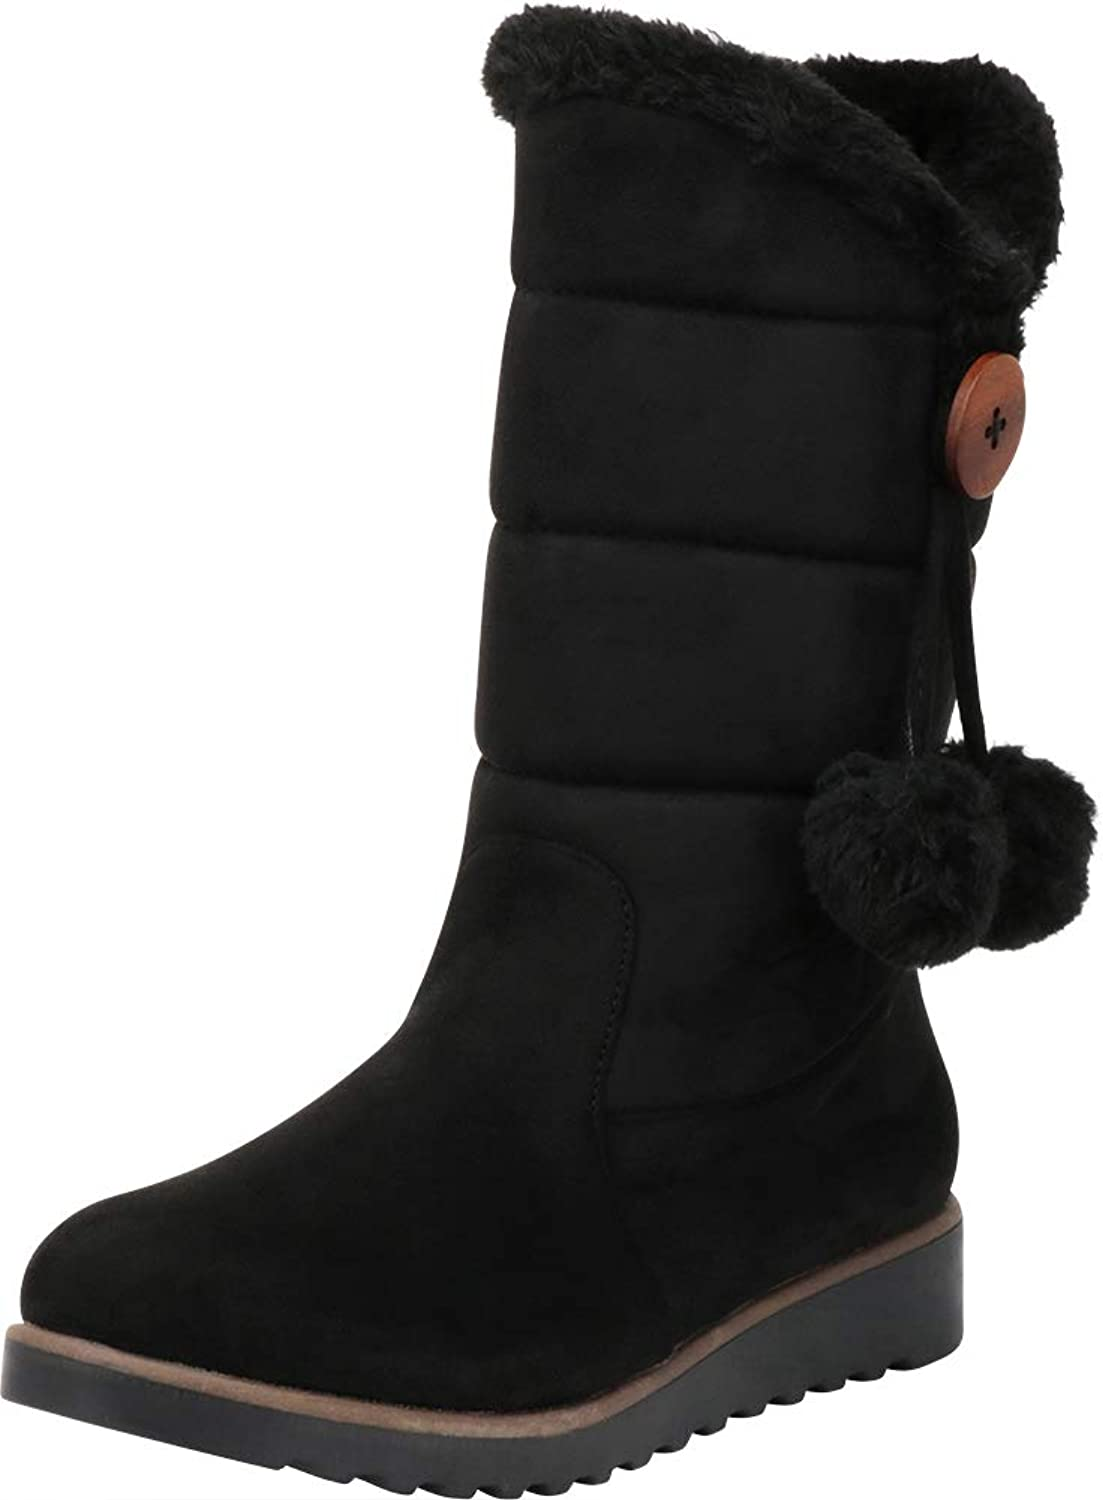 Cambridge Select Women's Faux Fur Pom Pom Quilted Mid-Calf Boot